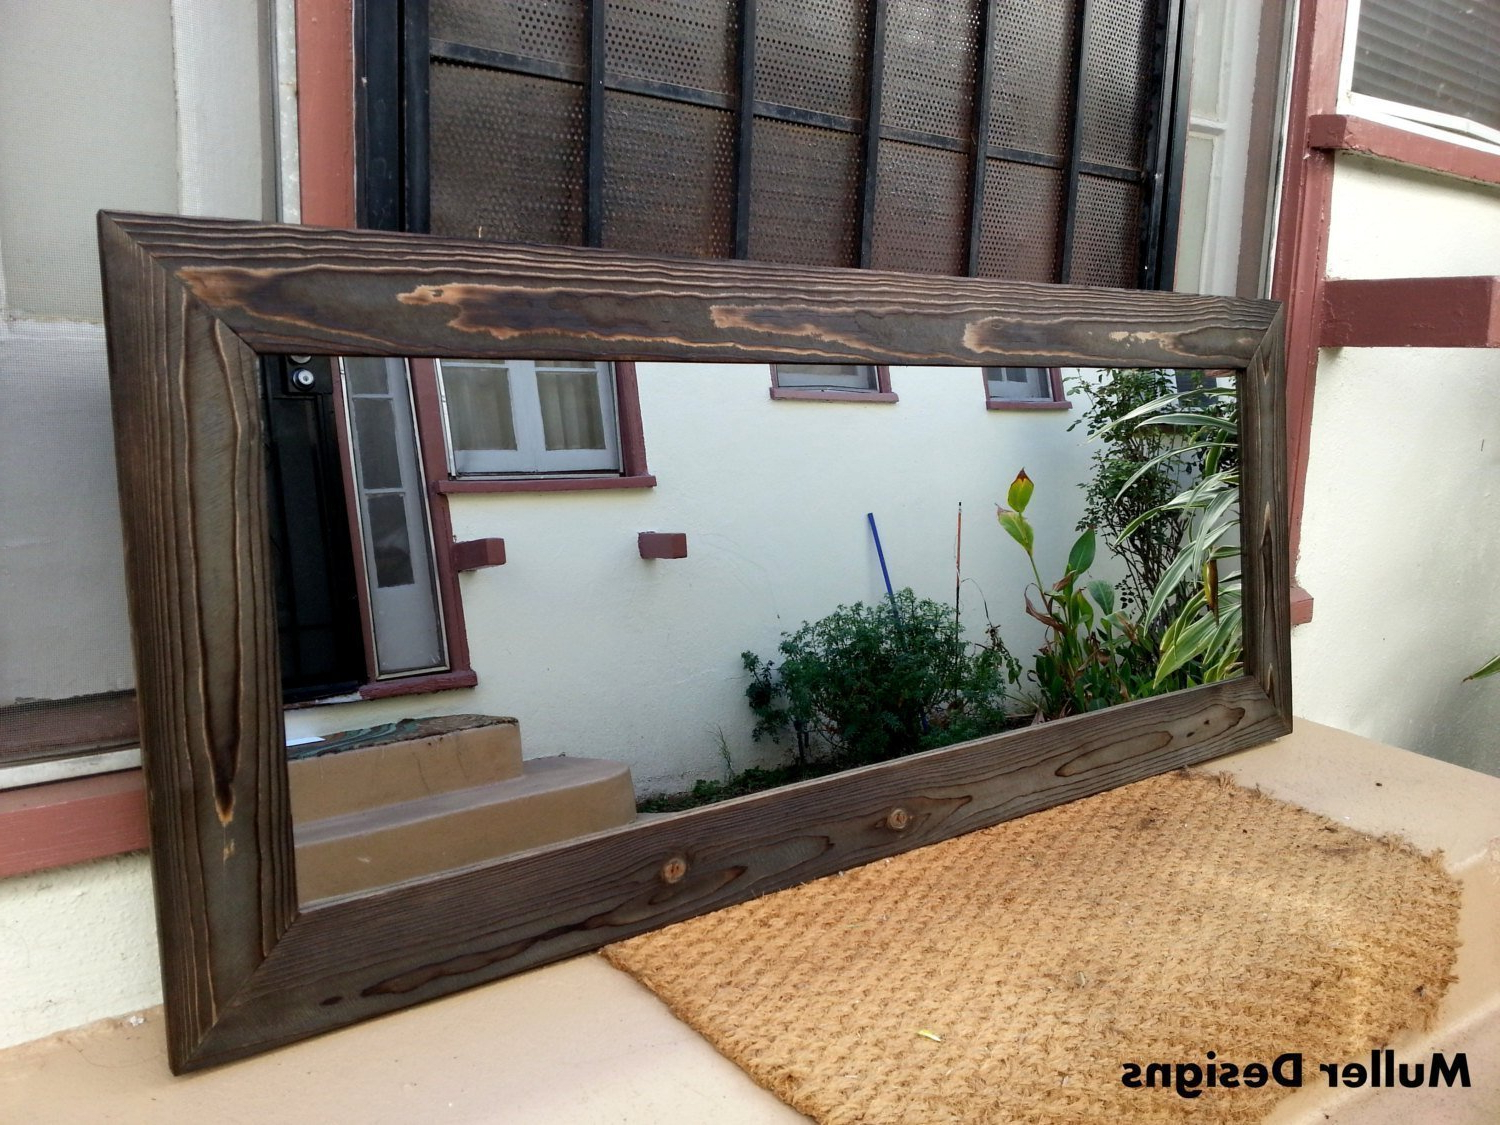 Favorite Rustic Wood Wall Mirrors Regarding Black Wood Mirror/reclaimed Wood Mirror/rustic Wood Mirror/wall Mirror/bathroom Mirror/decorative Mirror/large Mirror/full Length Mirror (View 11 of 20)